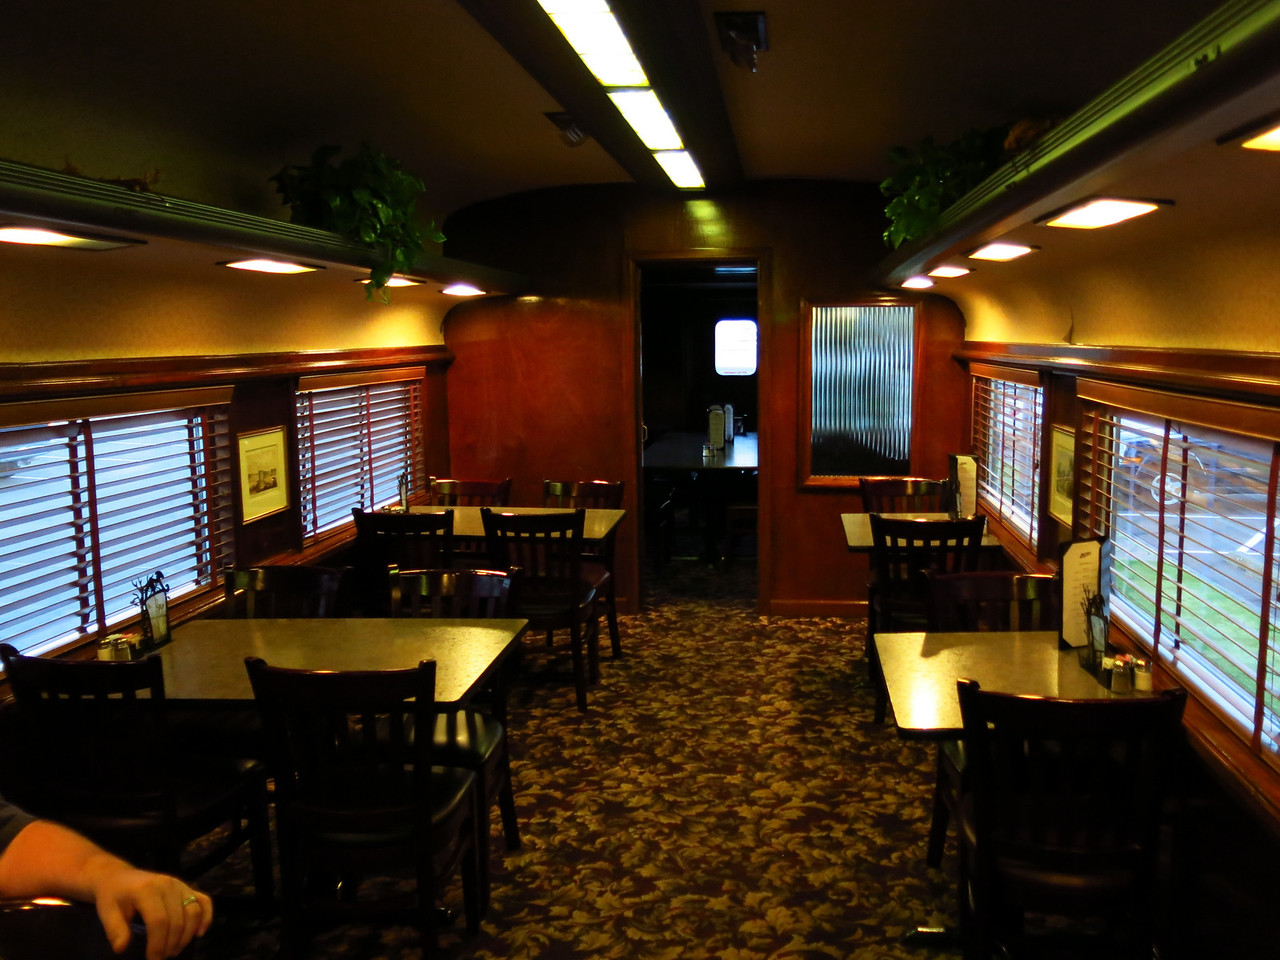 In the train car at the restaurant.